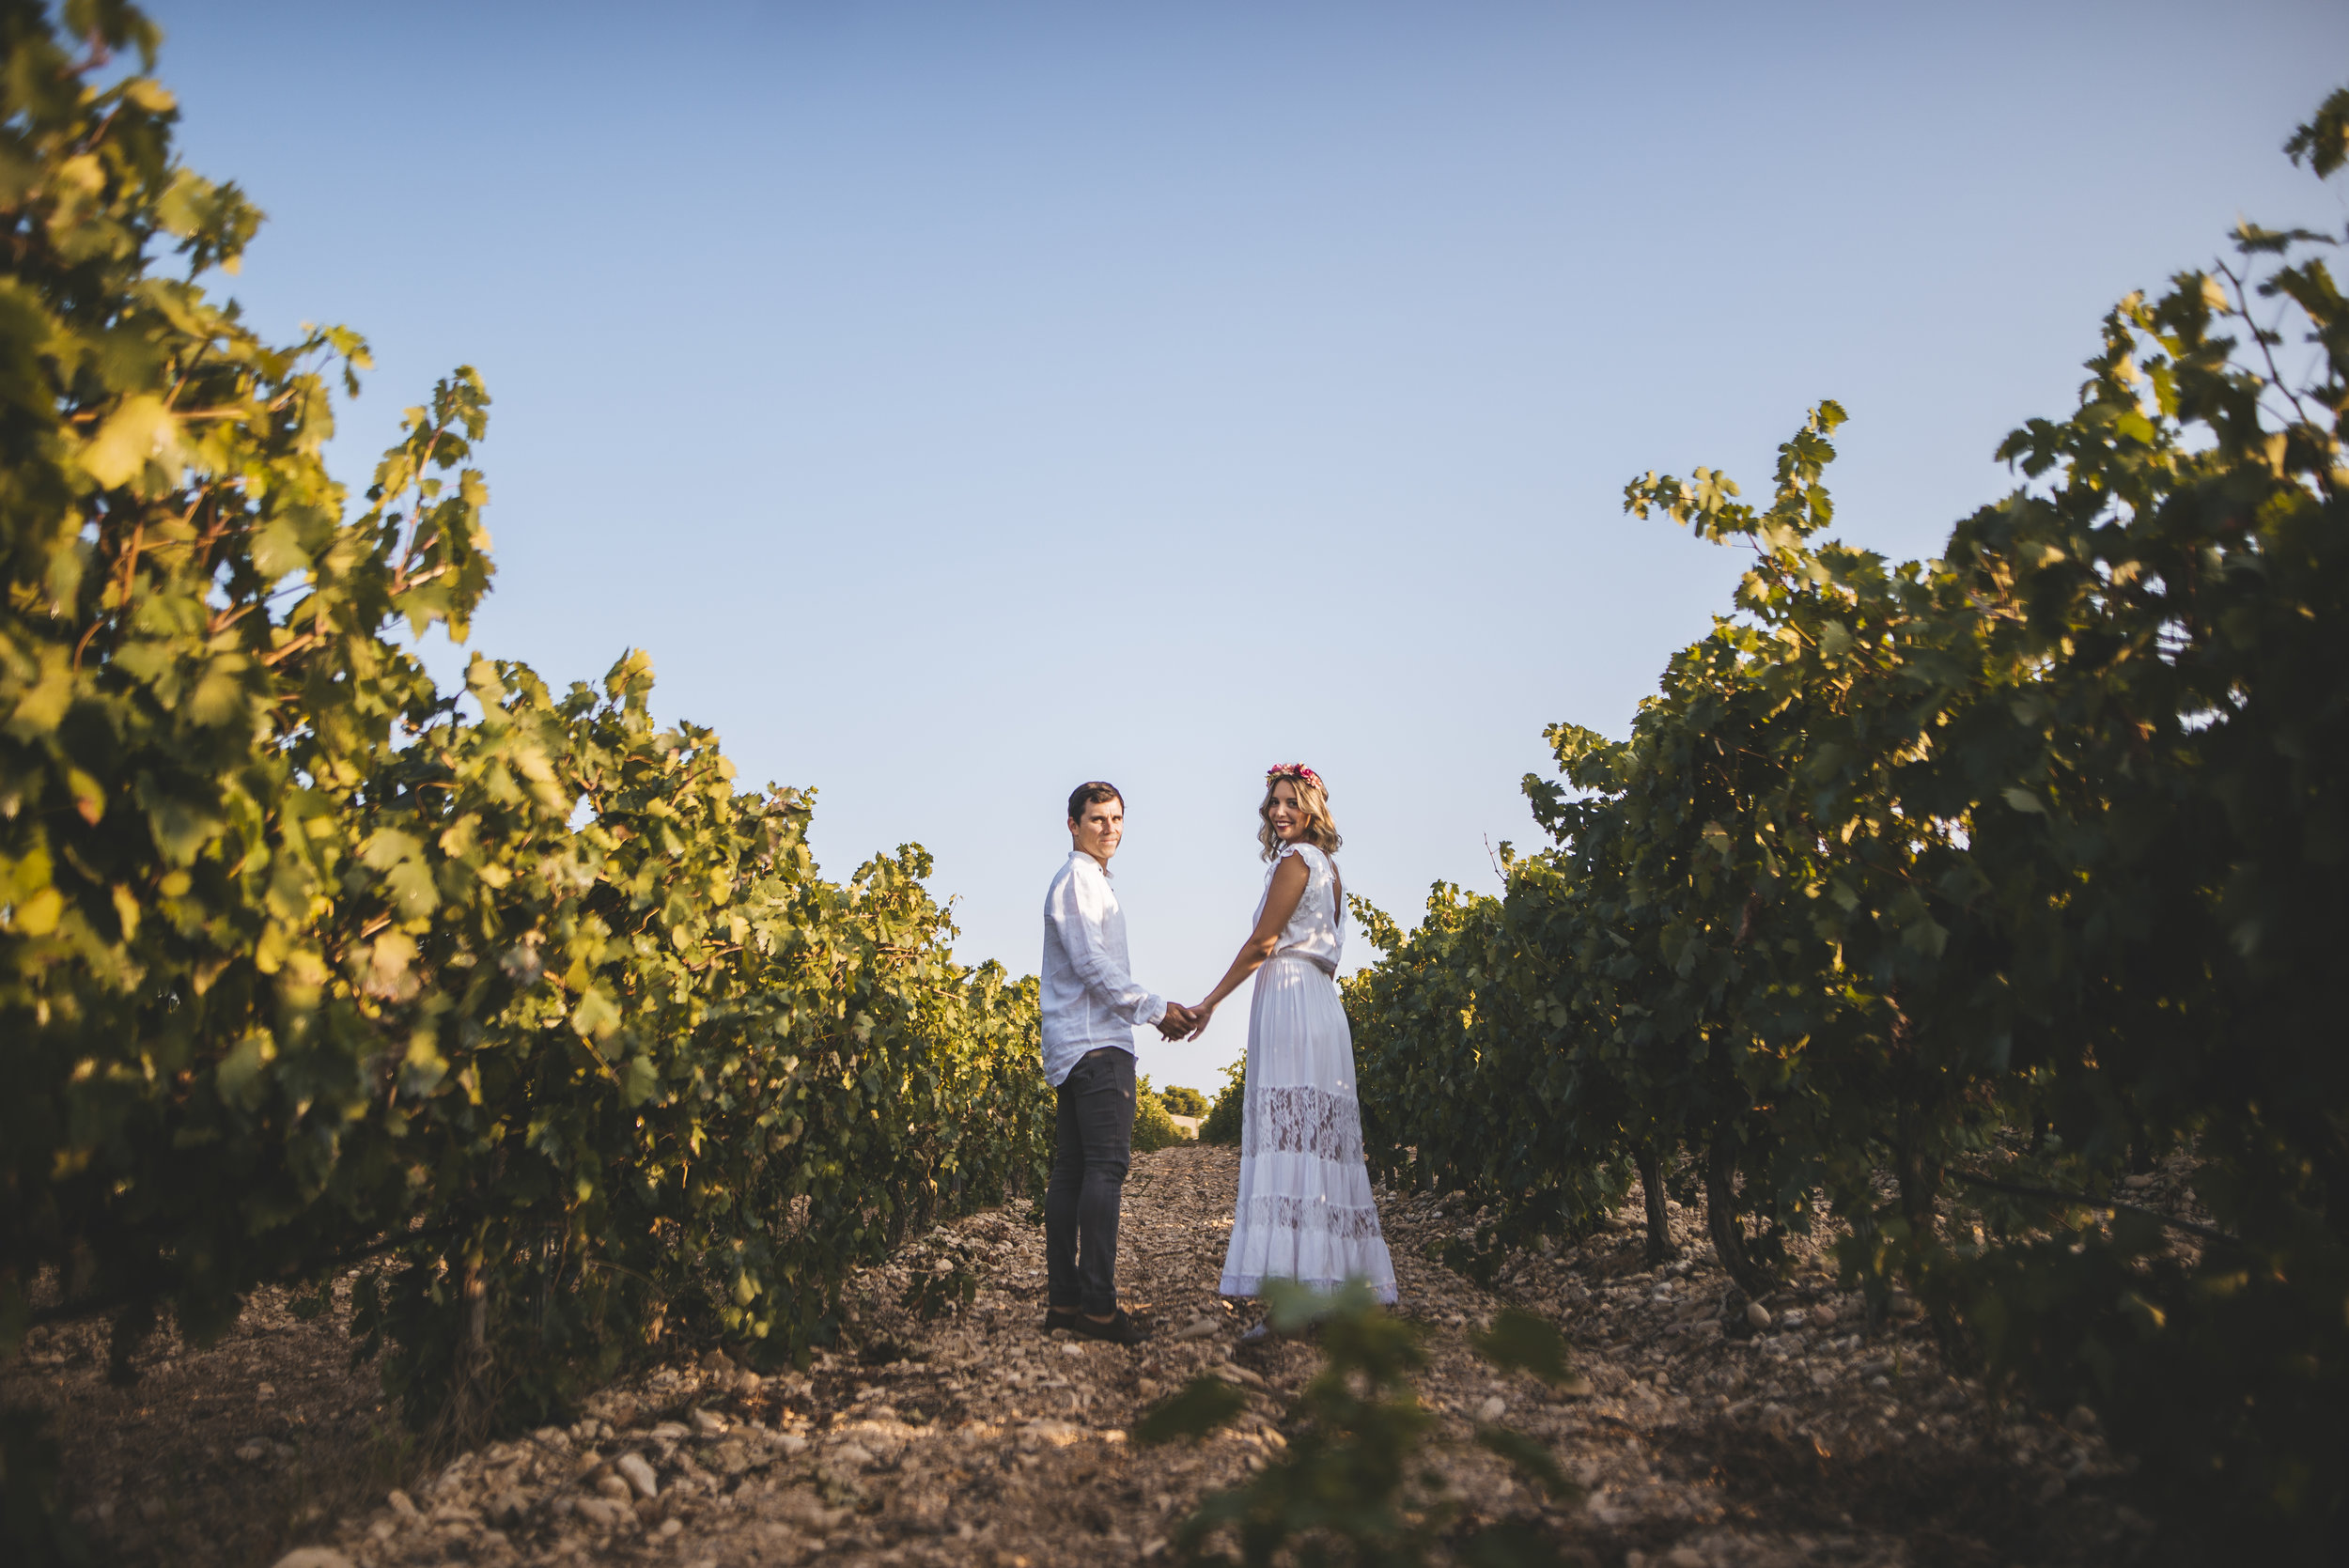 Bride and Groom on their wedding day in a vineyard